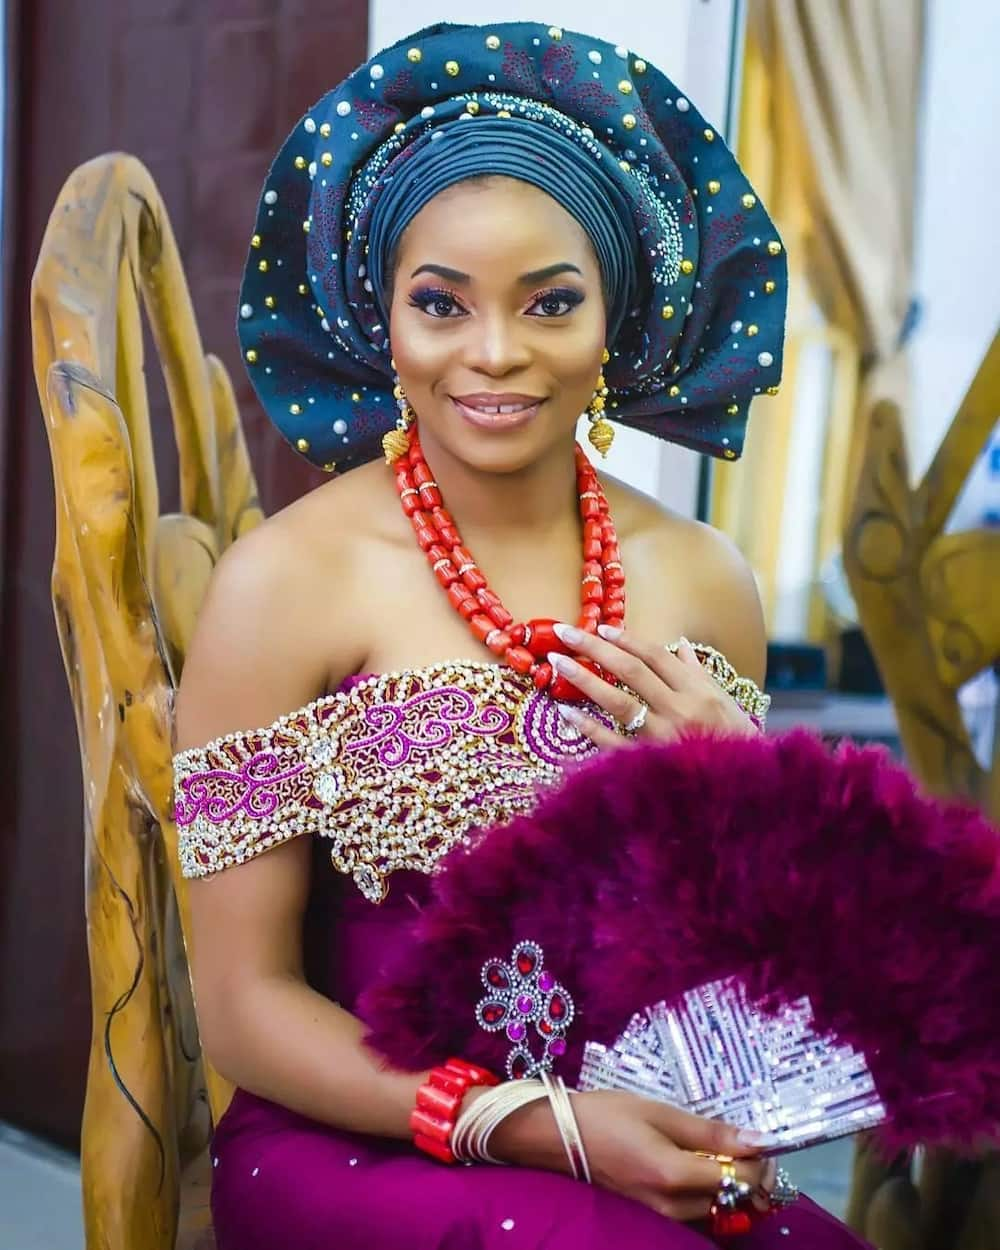 Types of Igbo dressing for women